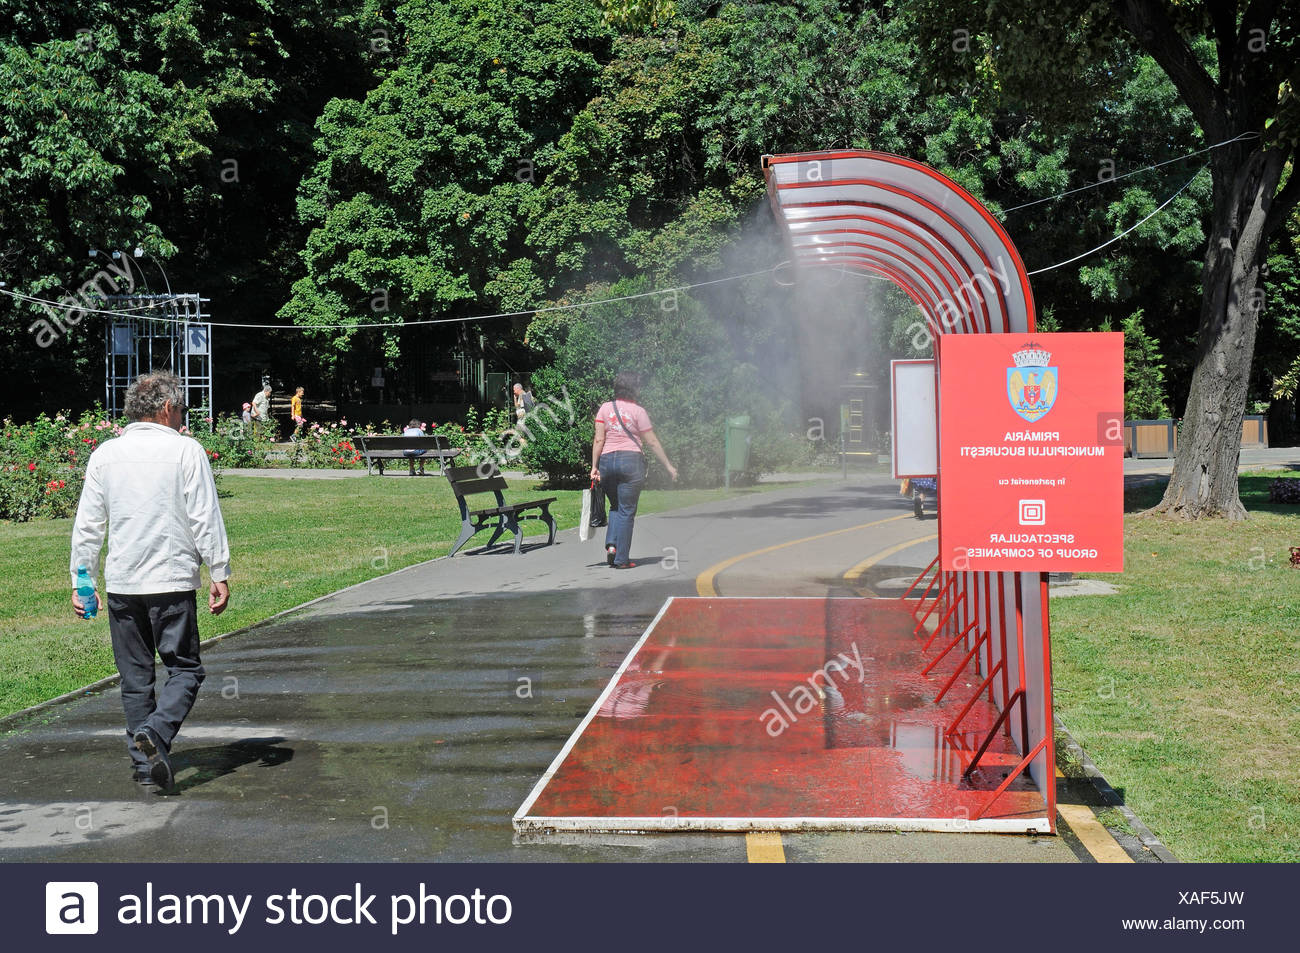 Public water sprinkling system, hot weather, water, cooling, summer, Bucharest, Romania, Eastern Europe, Europe, PublicGround Stock Photo